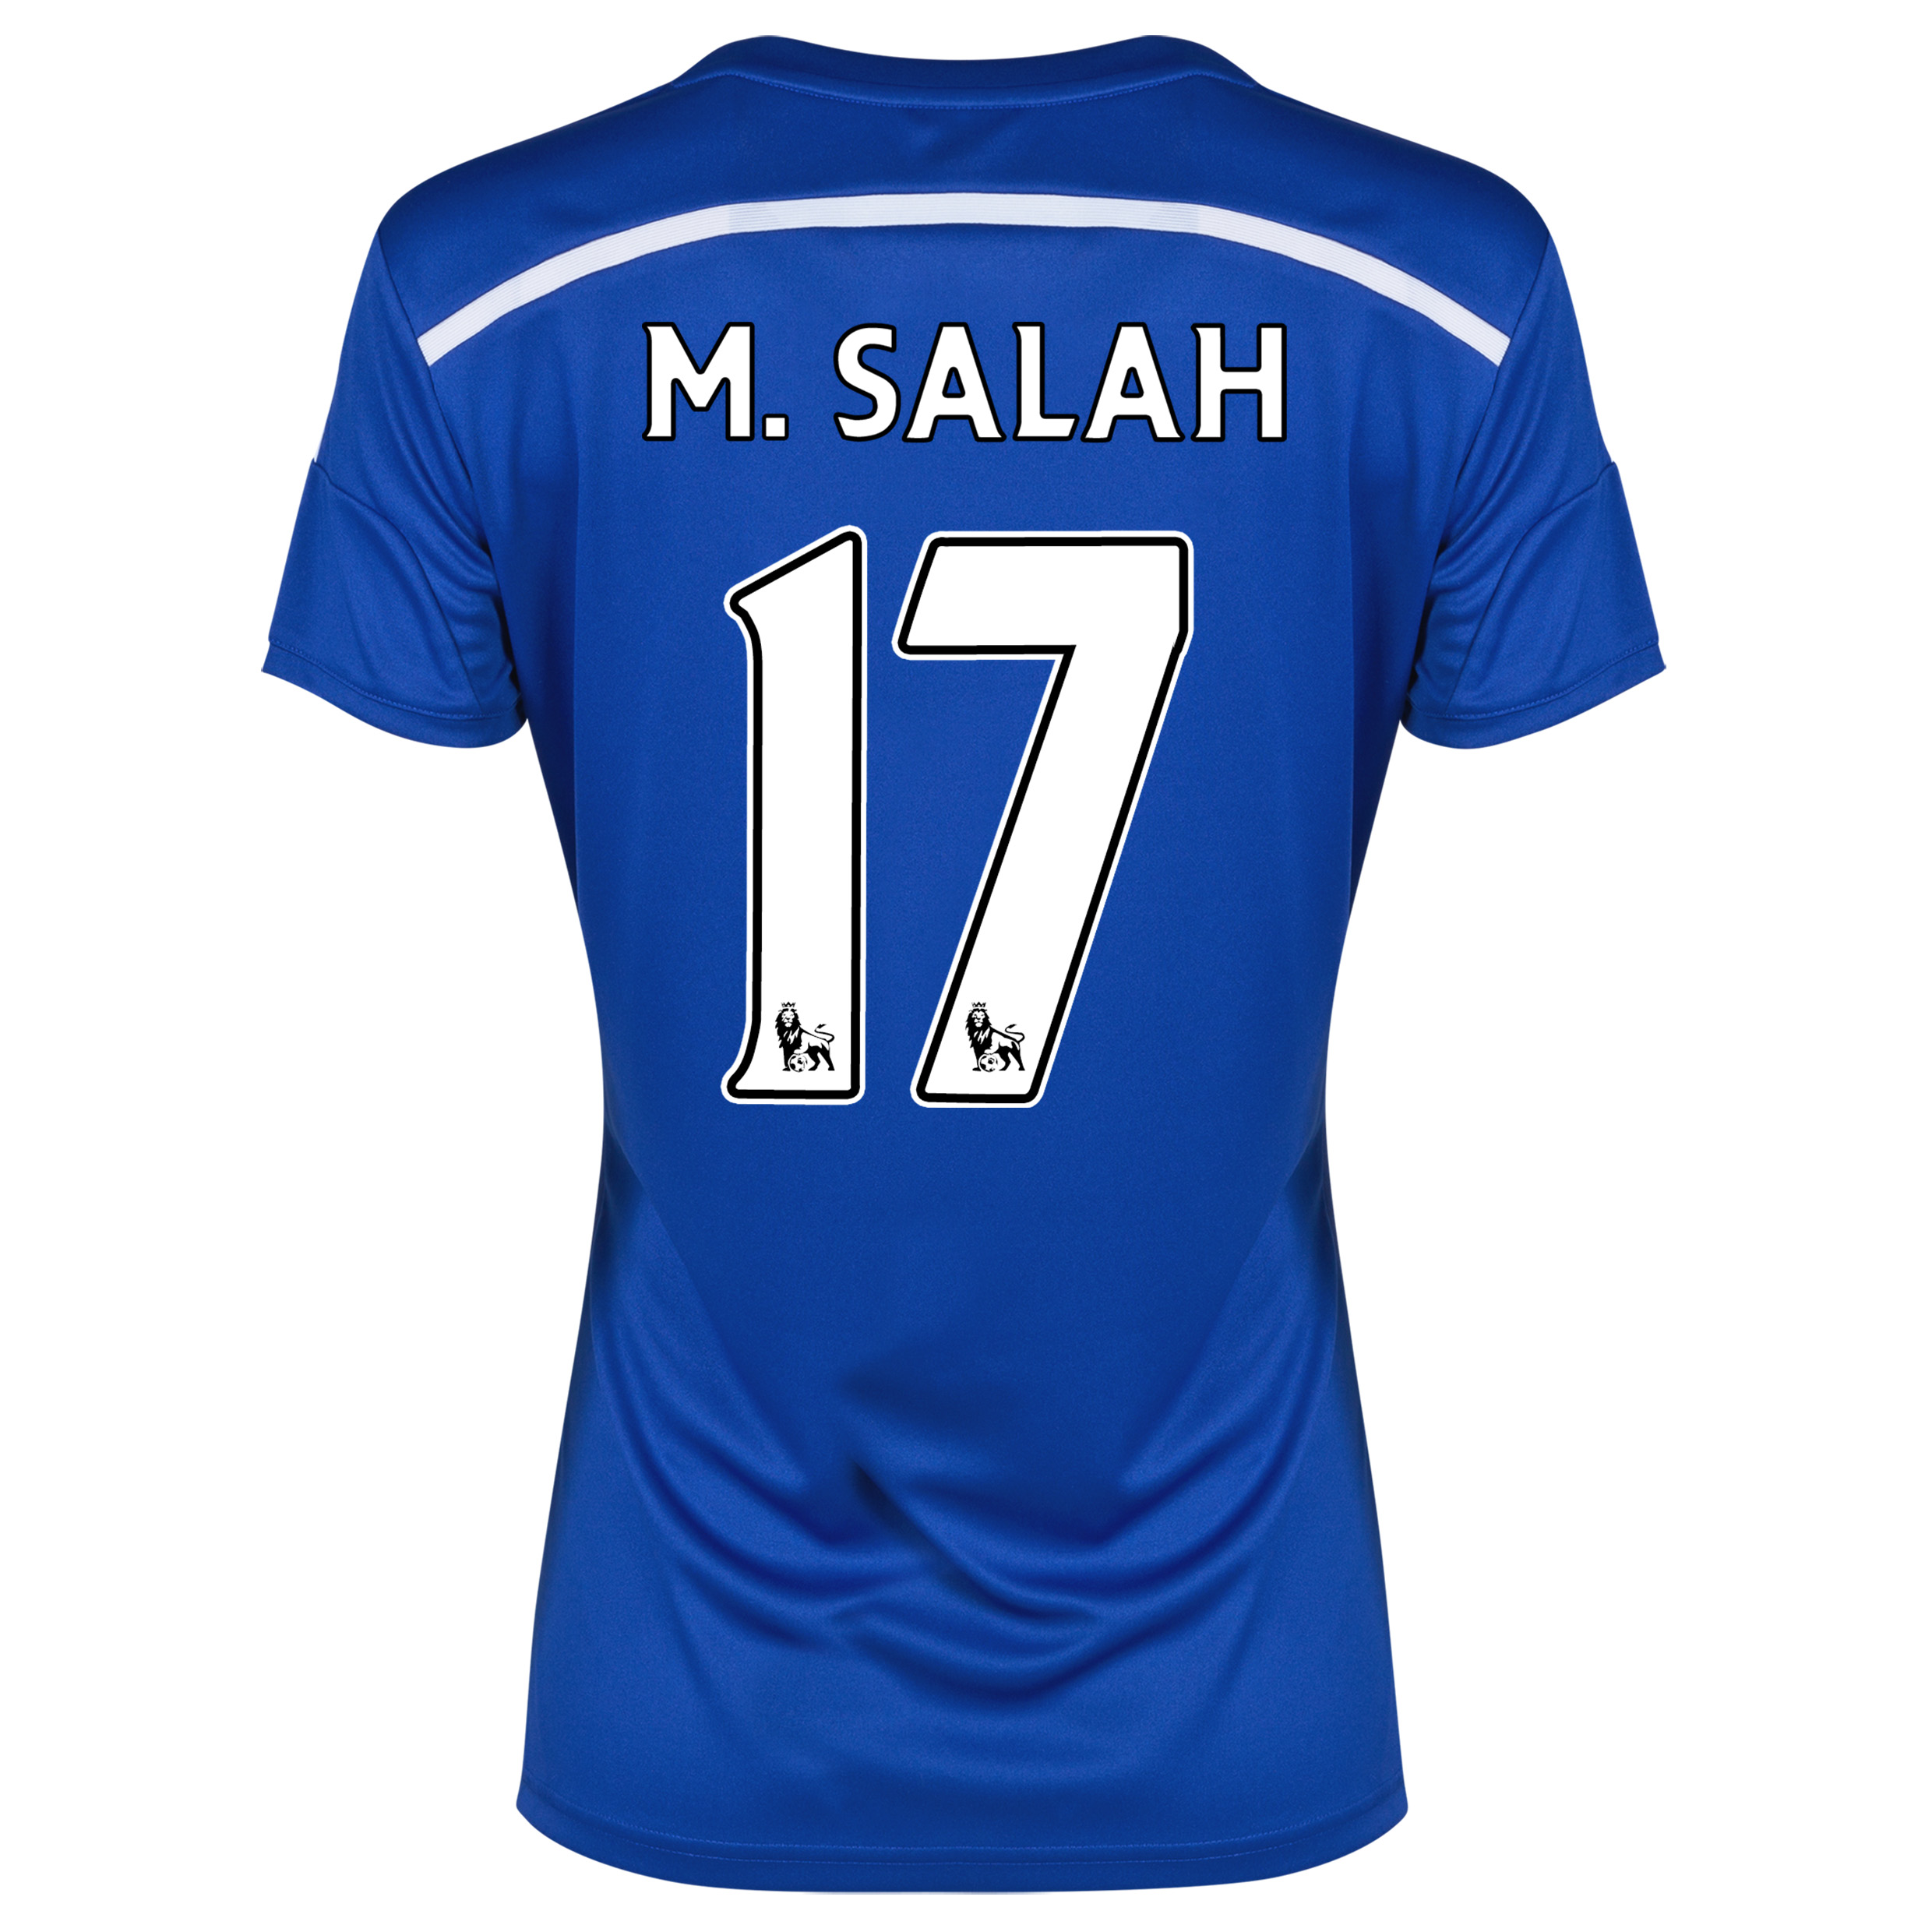 Chelsea Home Shirt 2014/15 - Womens Blue with M. Salah 17 printing